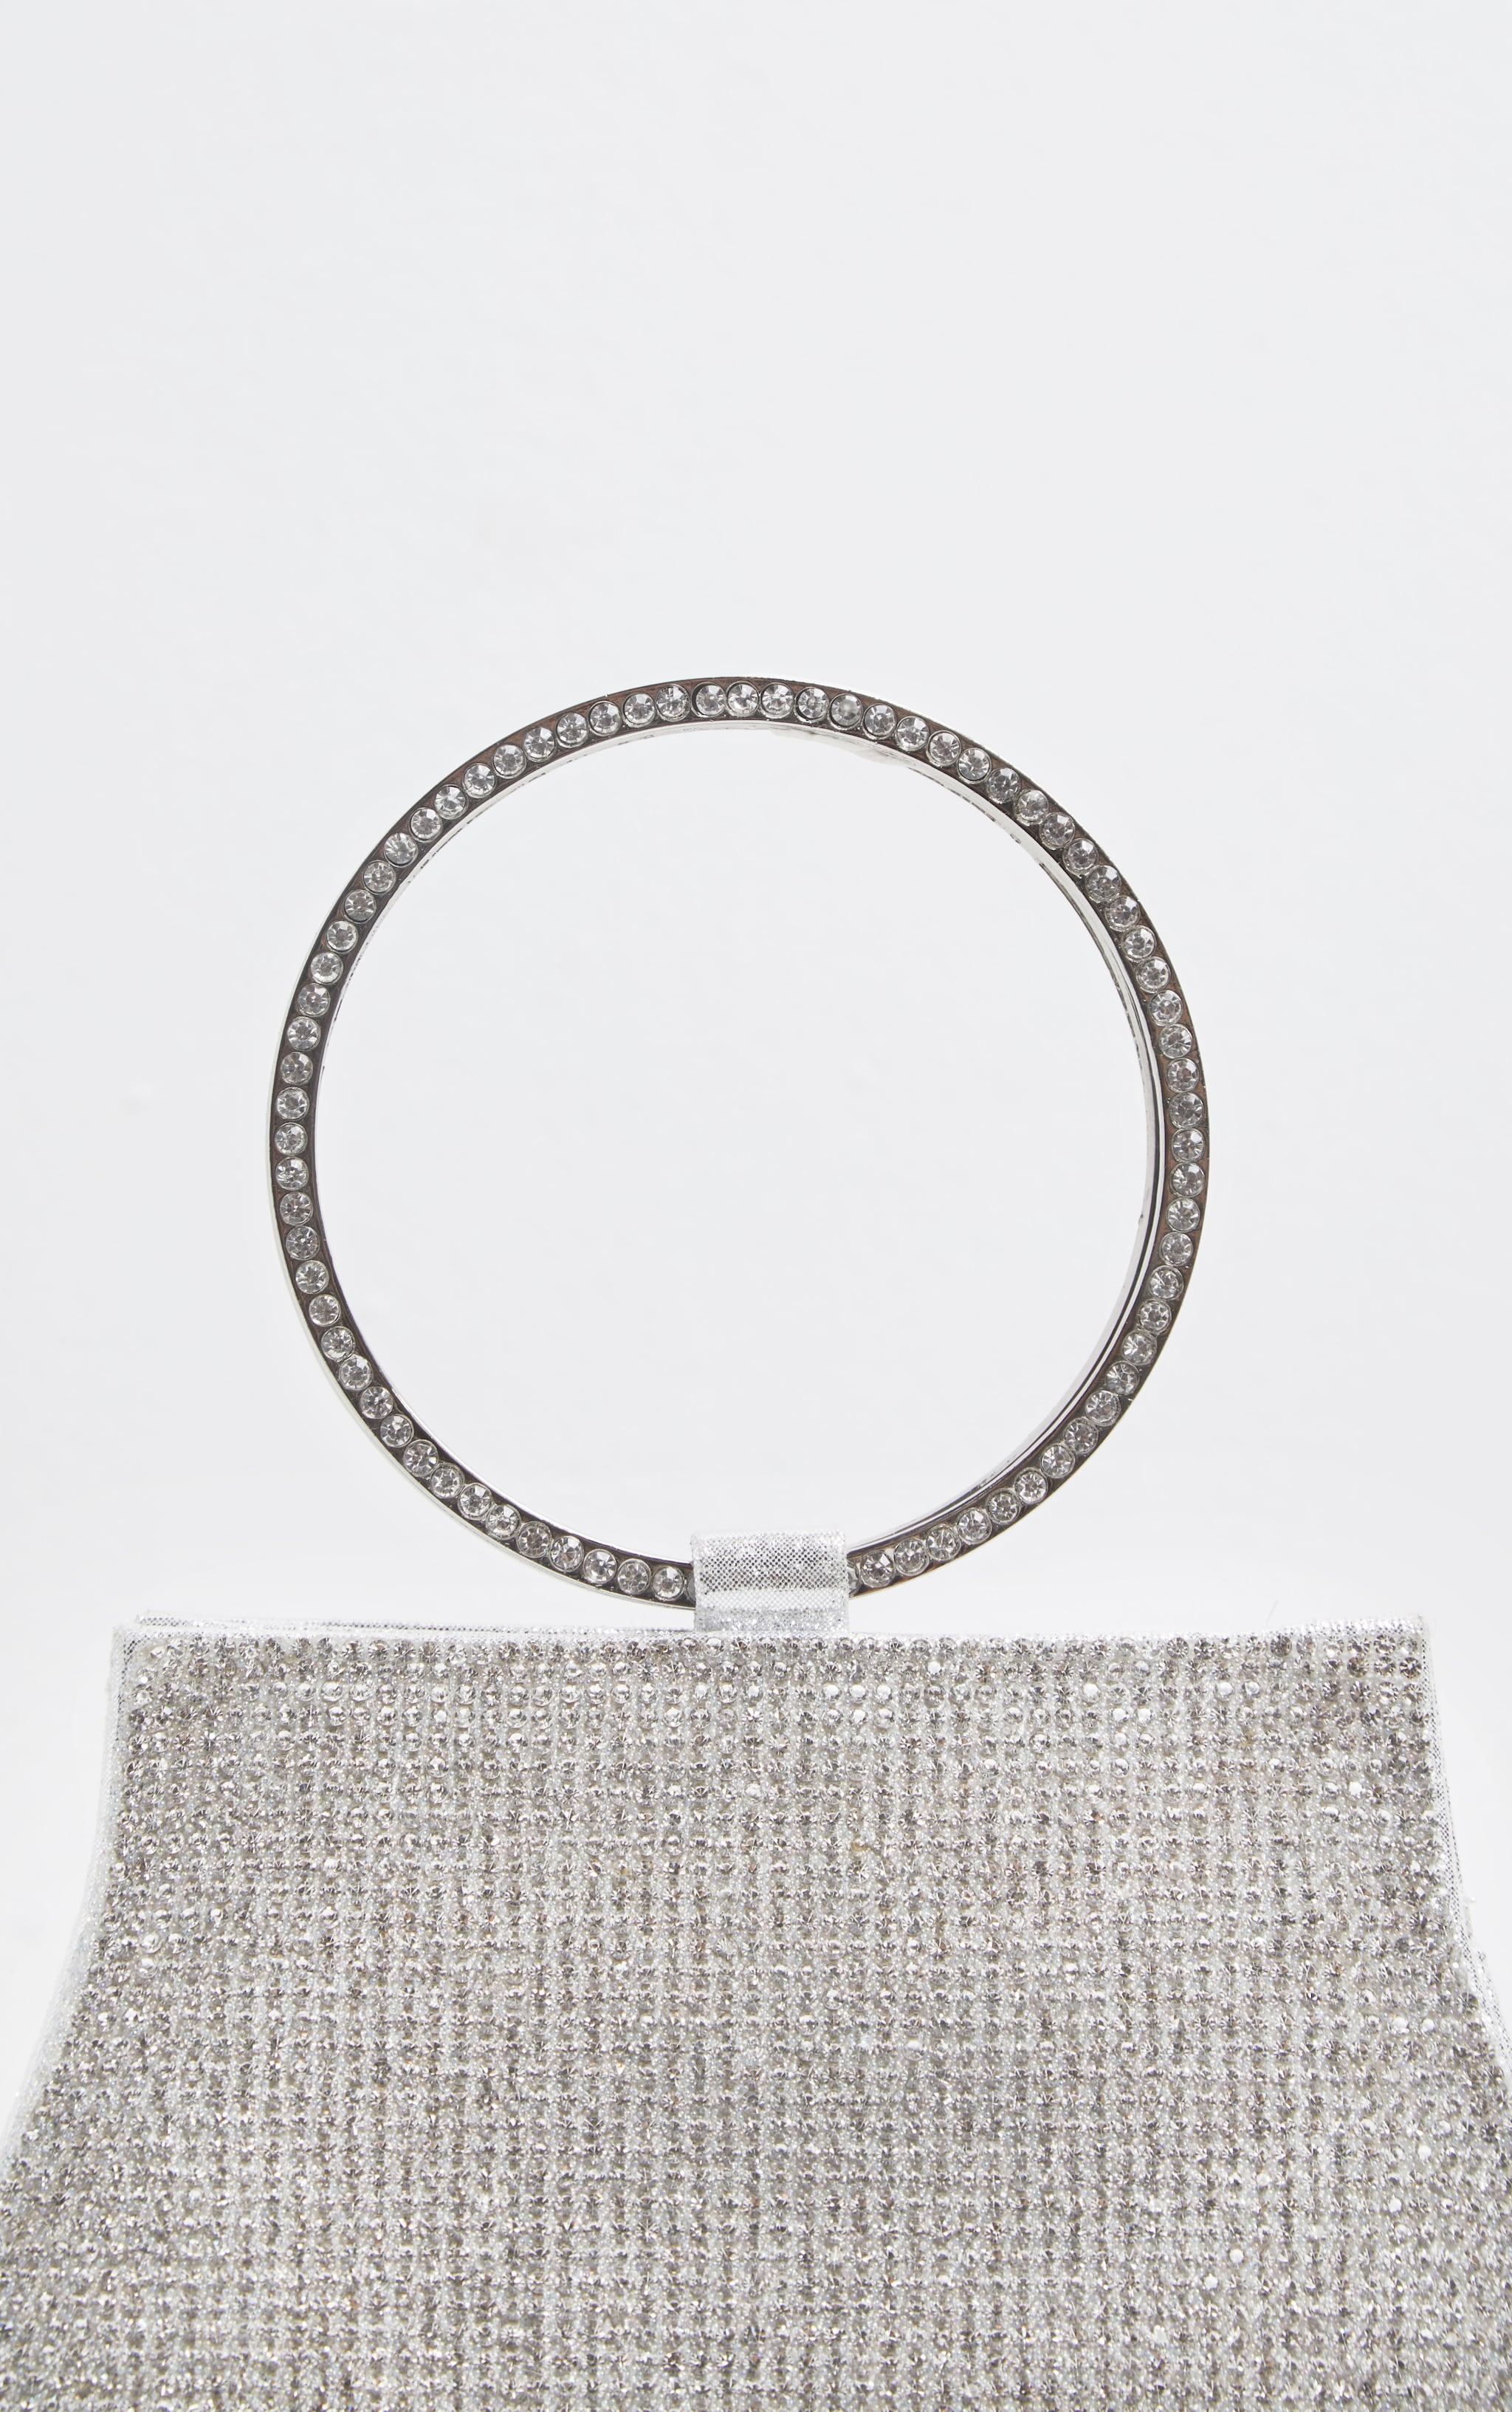 Silver Glitz Diamante Circle Handle Clutch 4